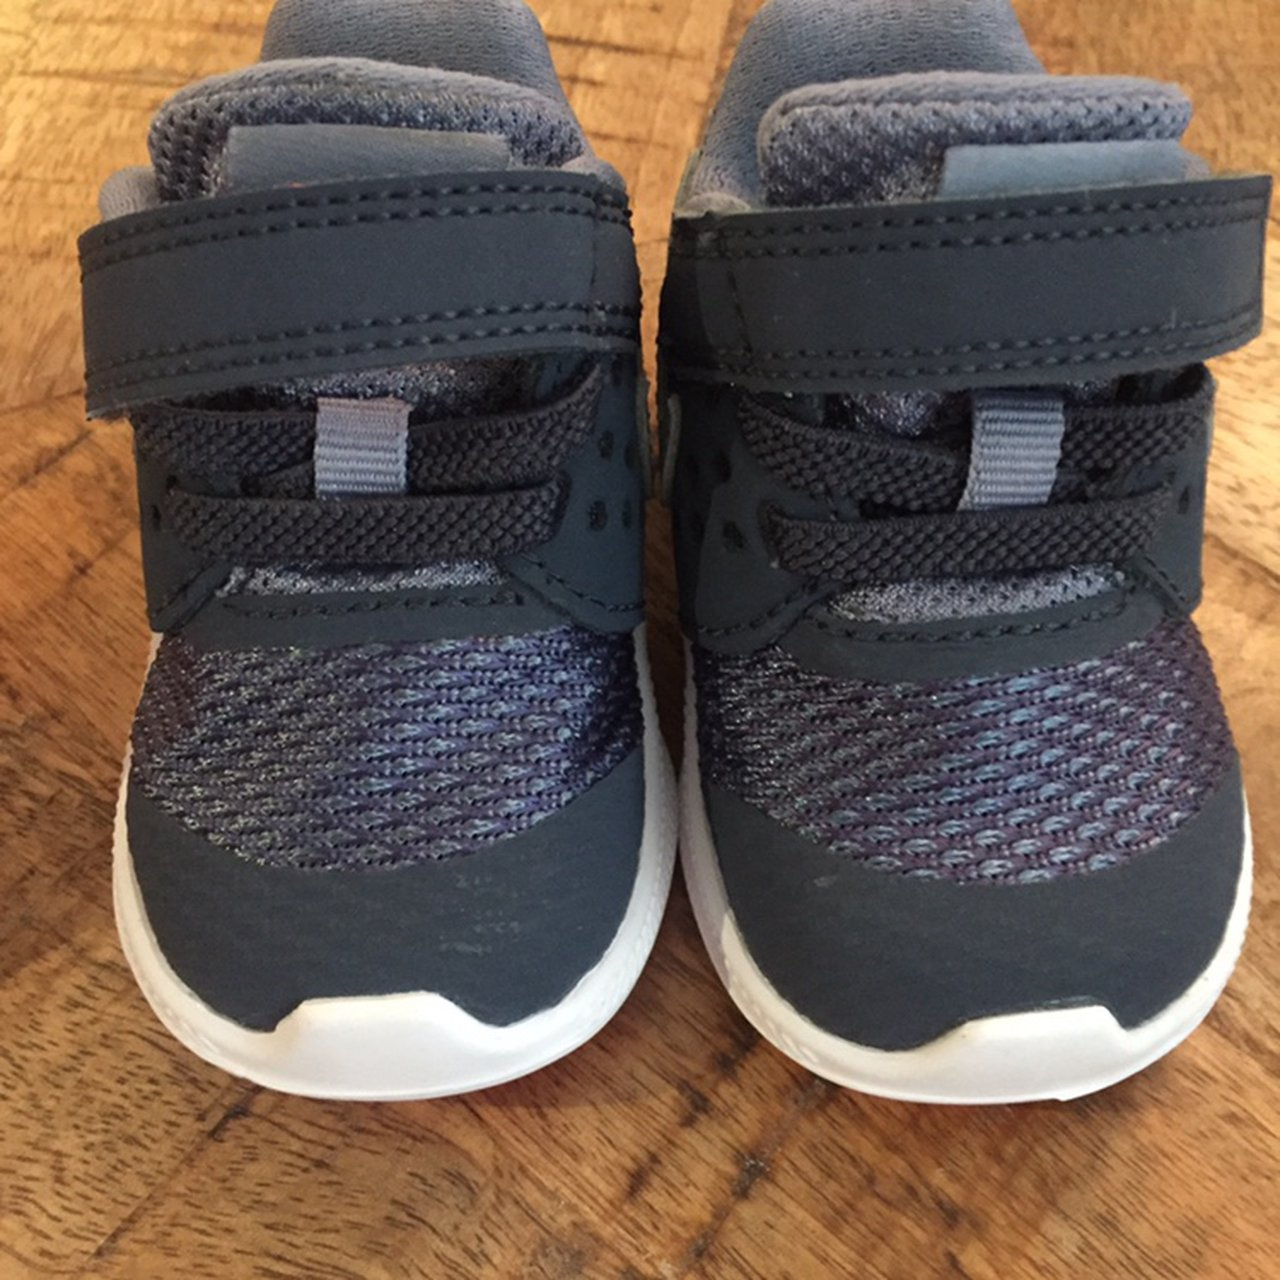 Baby Nike trainers size uk 1.5 (approx